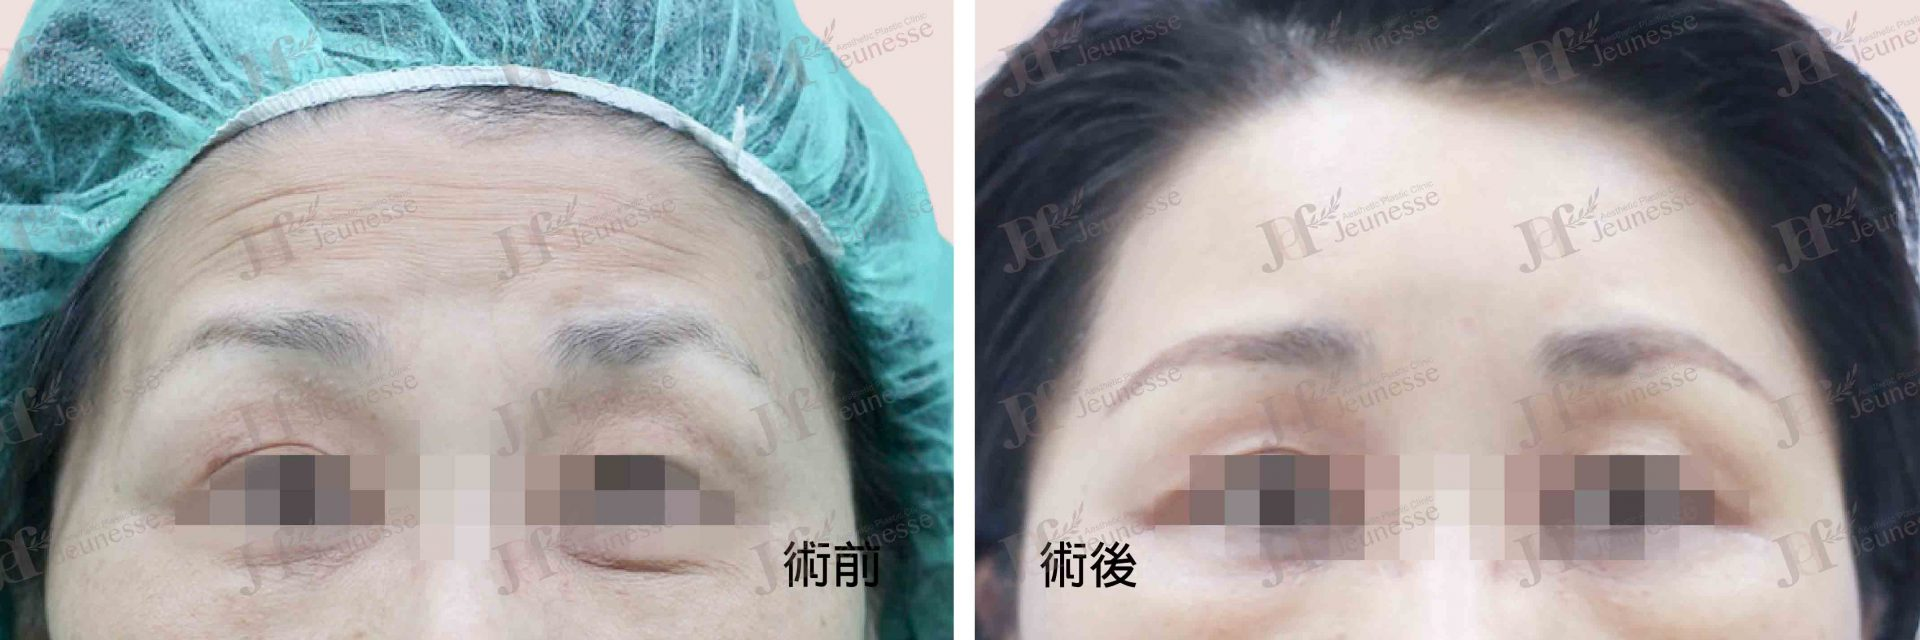 Forehead lifting case 2 正面-浮水印